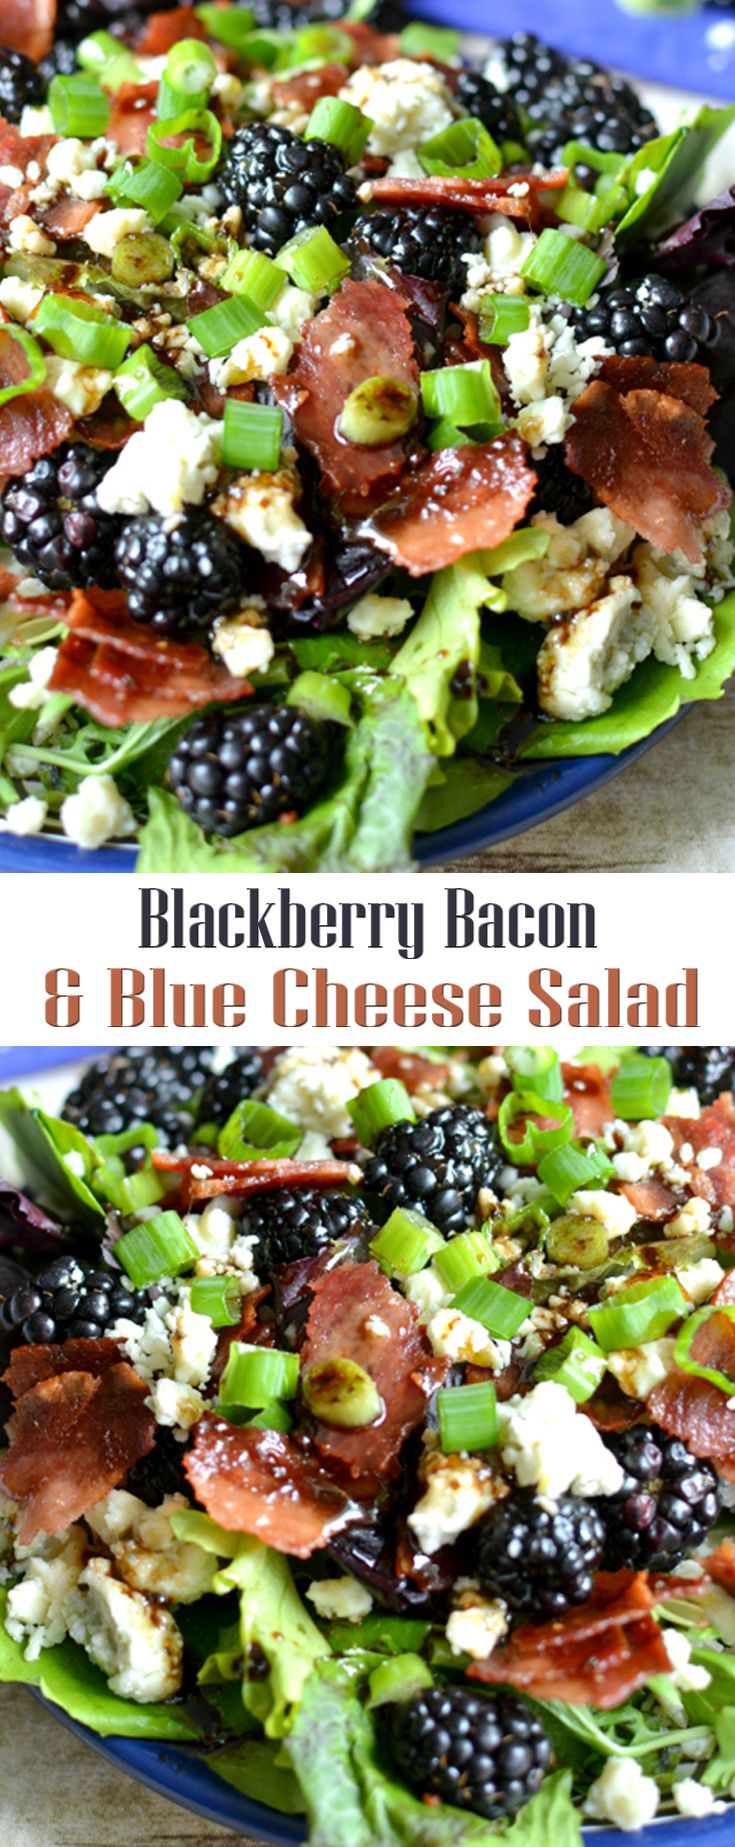 Blackberry Bacon & Blue Cheese Salad